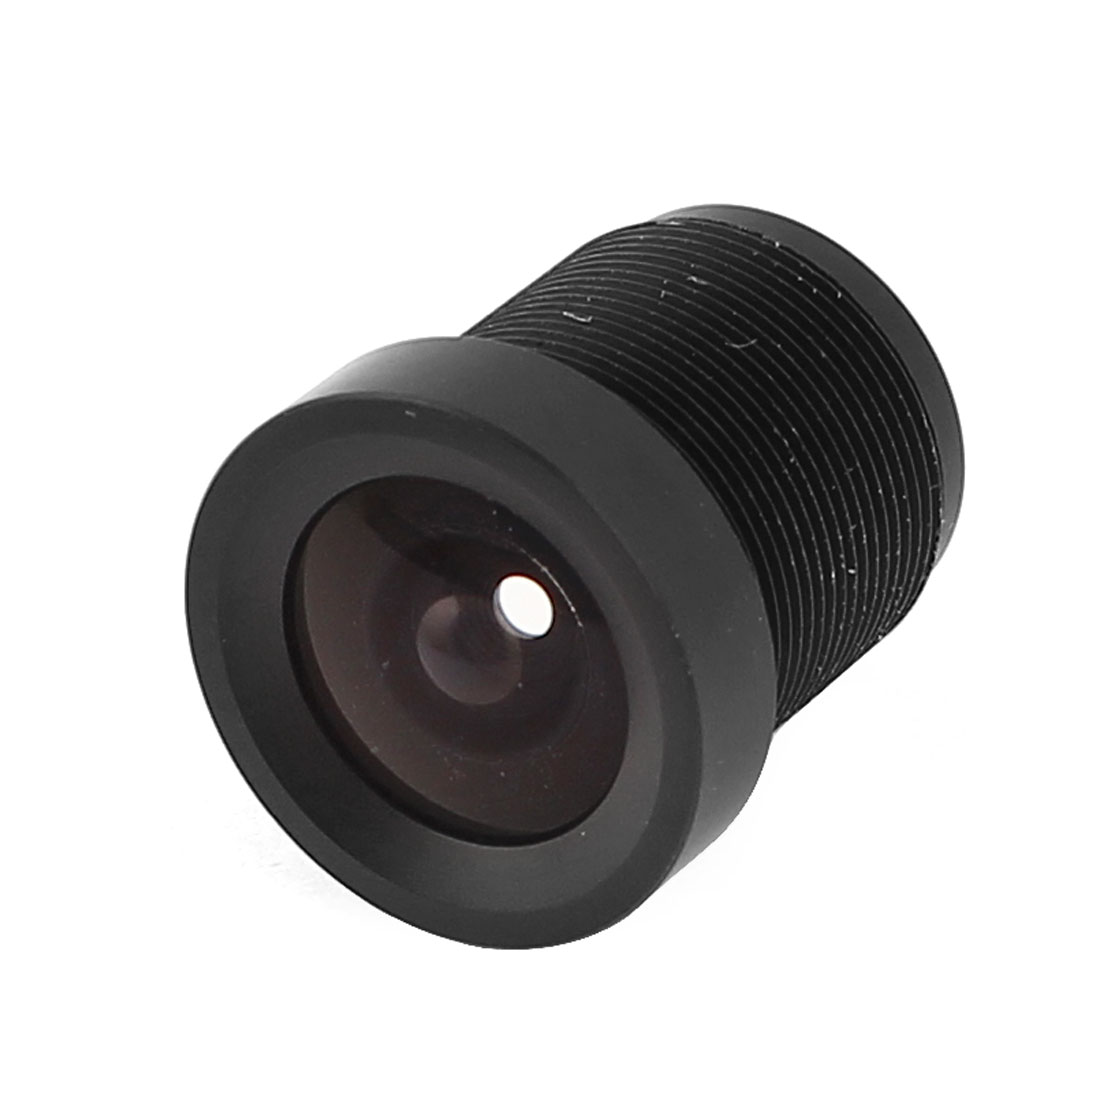 M12 Thread Mount 3.6mm Focal F2.0 IR Lens for CCD CCTV Camera